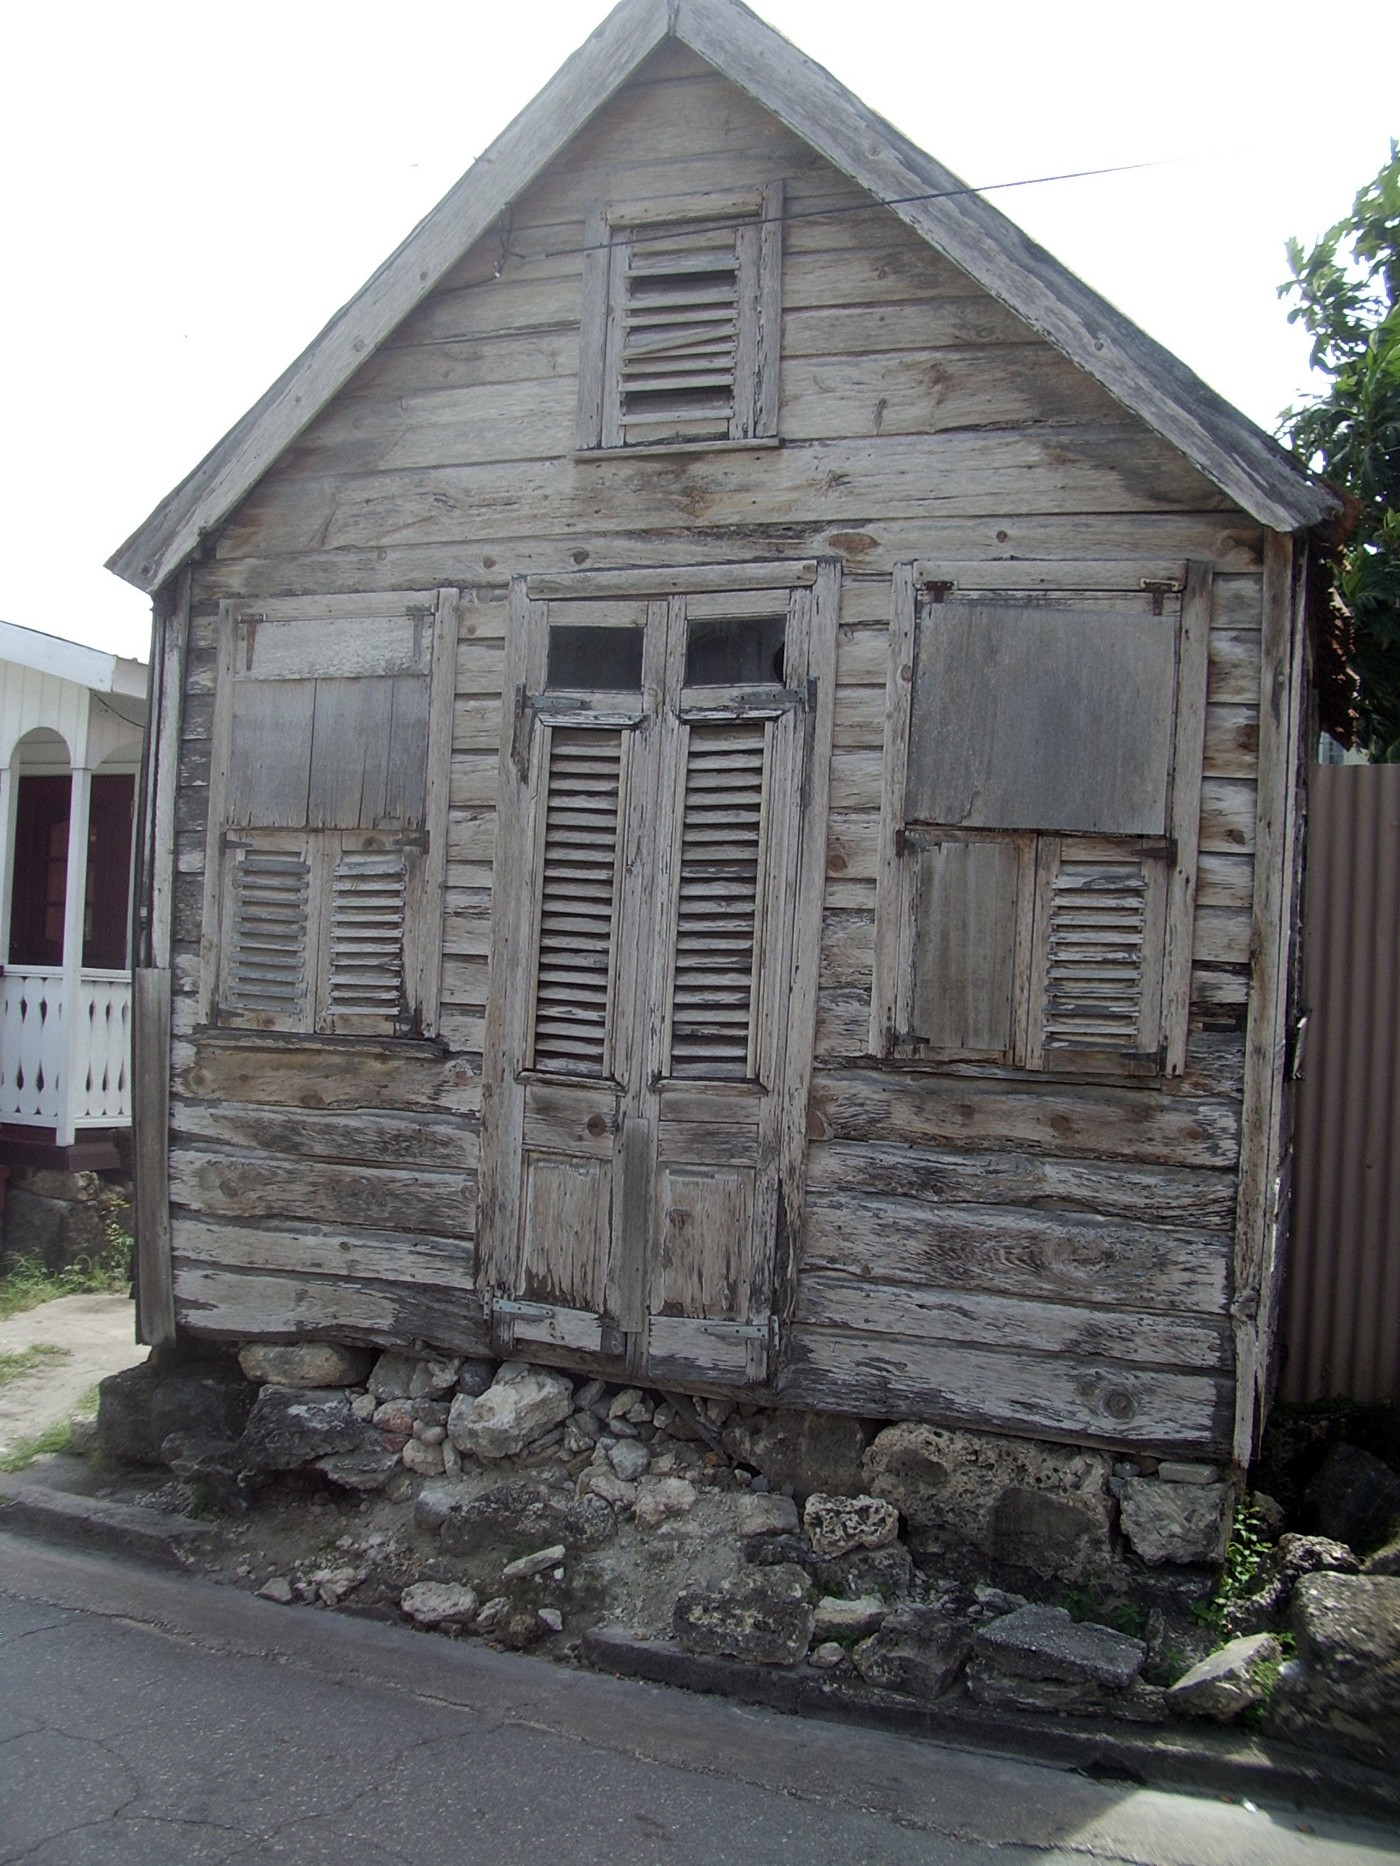 A 19th century 'chattel house'